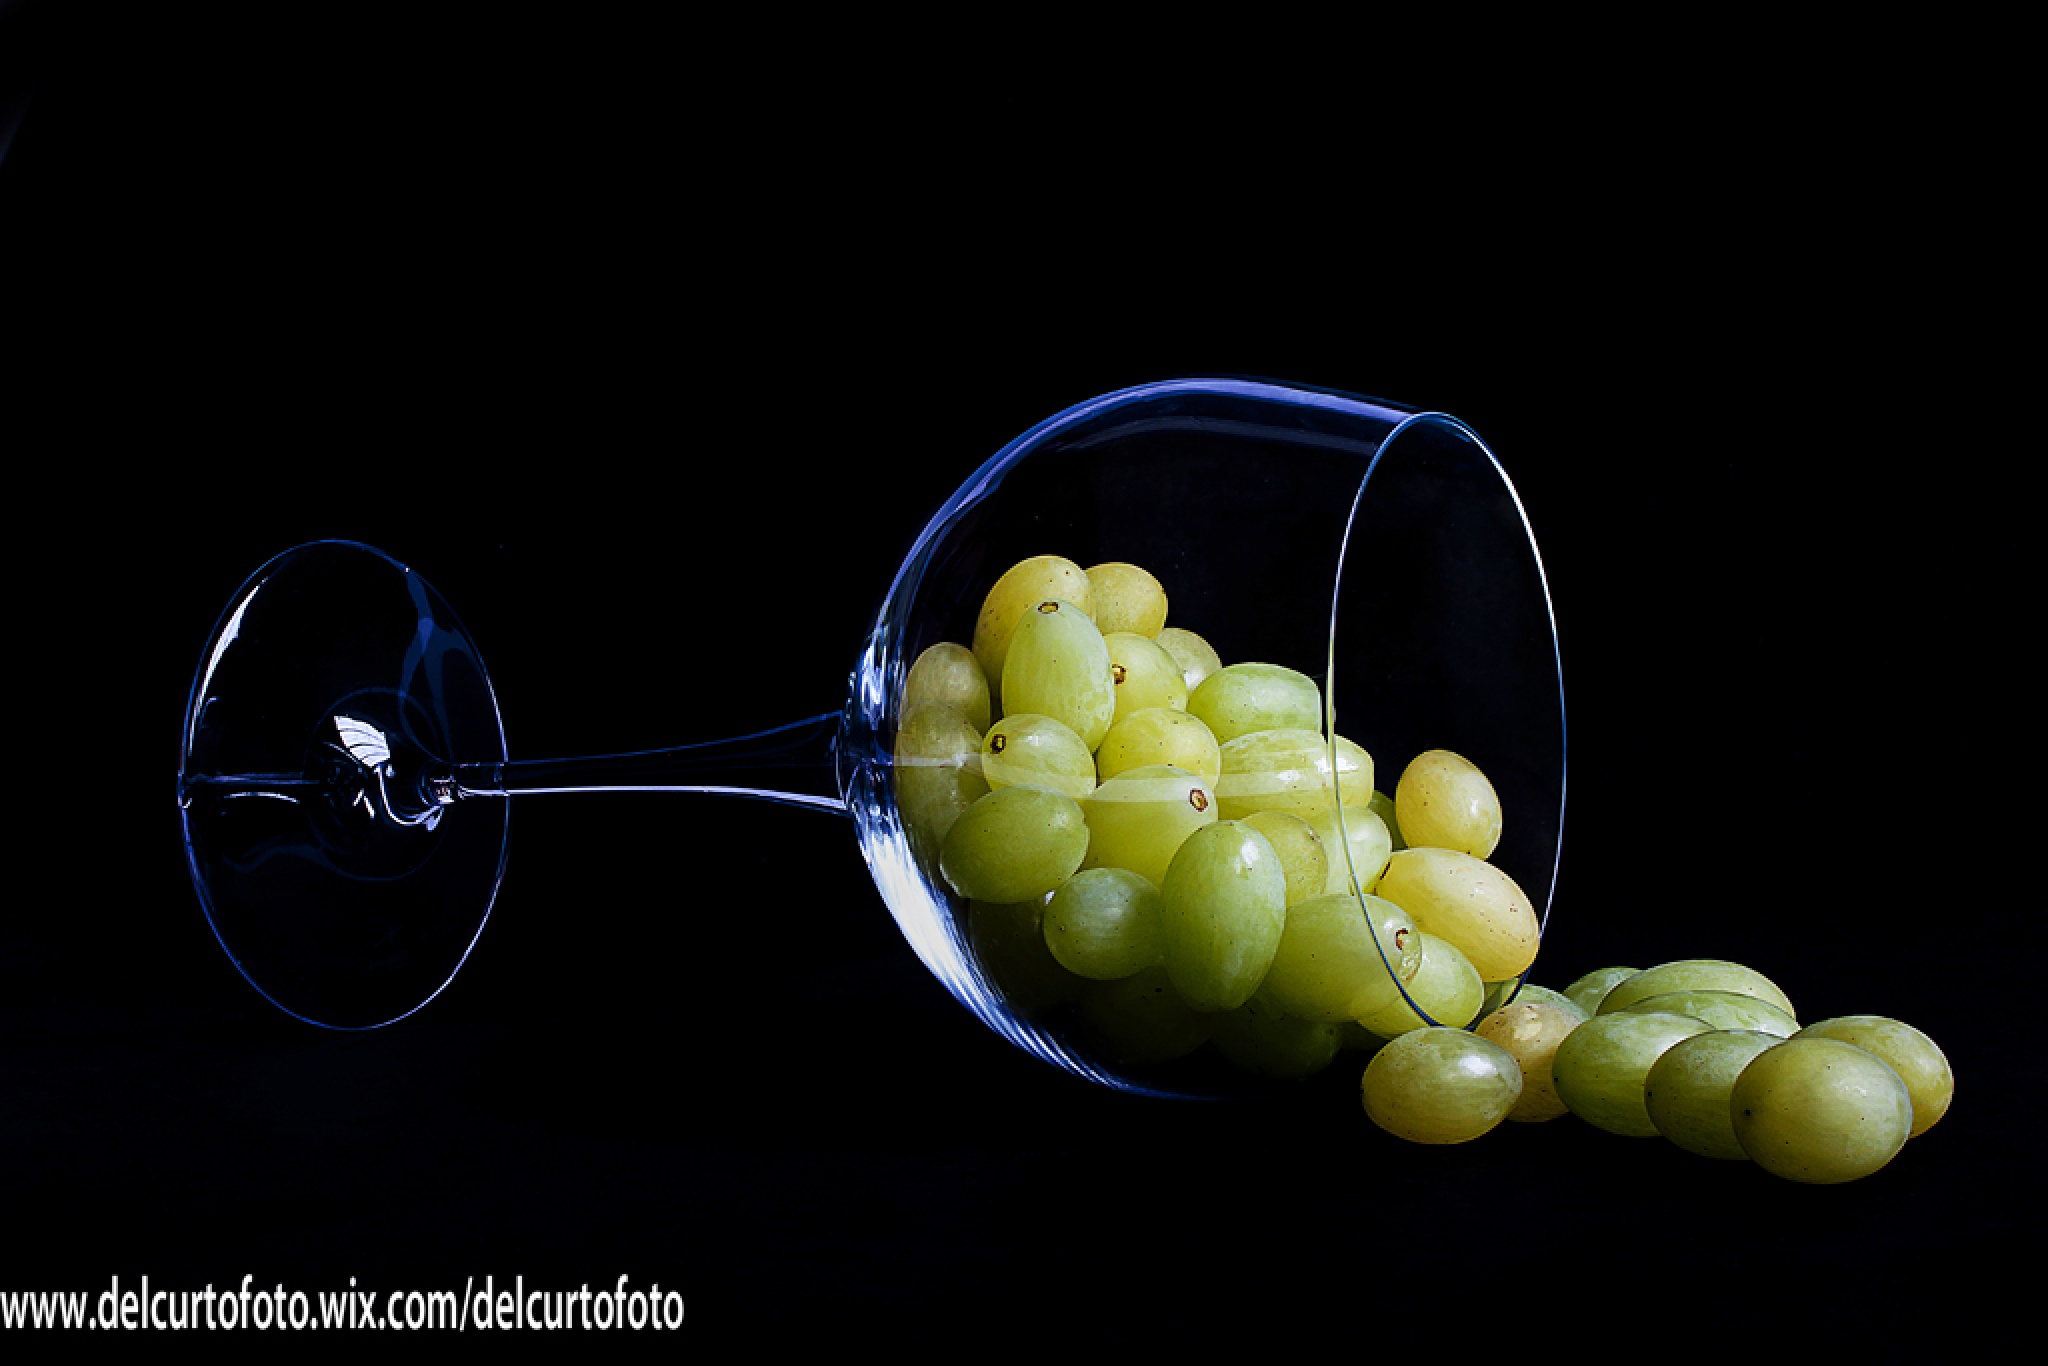 Grapes fruit in the glass by Giovanni Del Curto